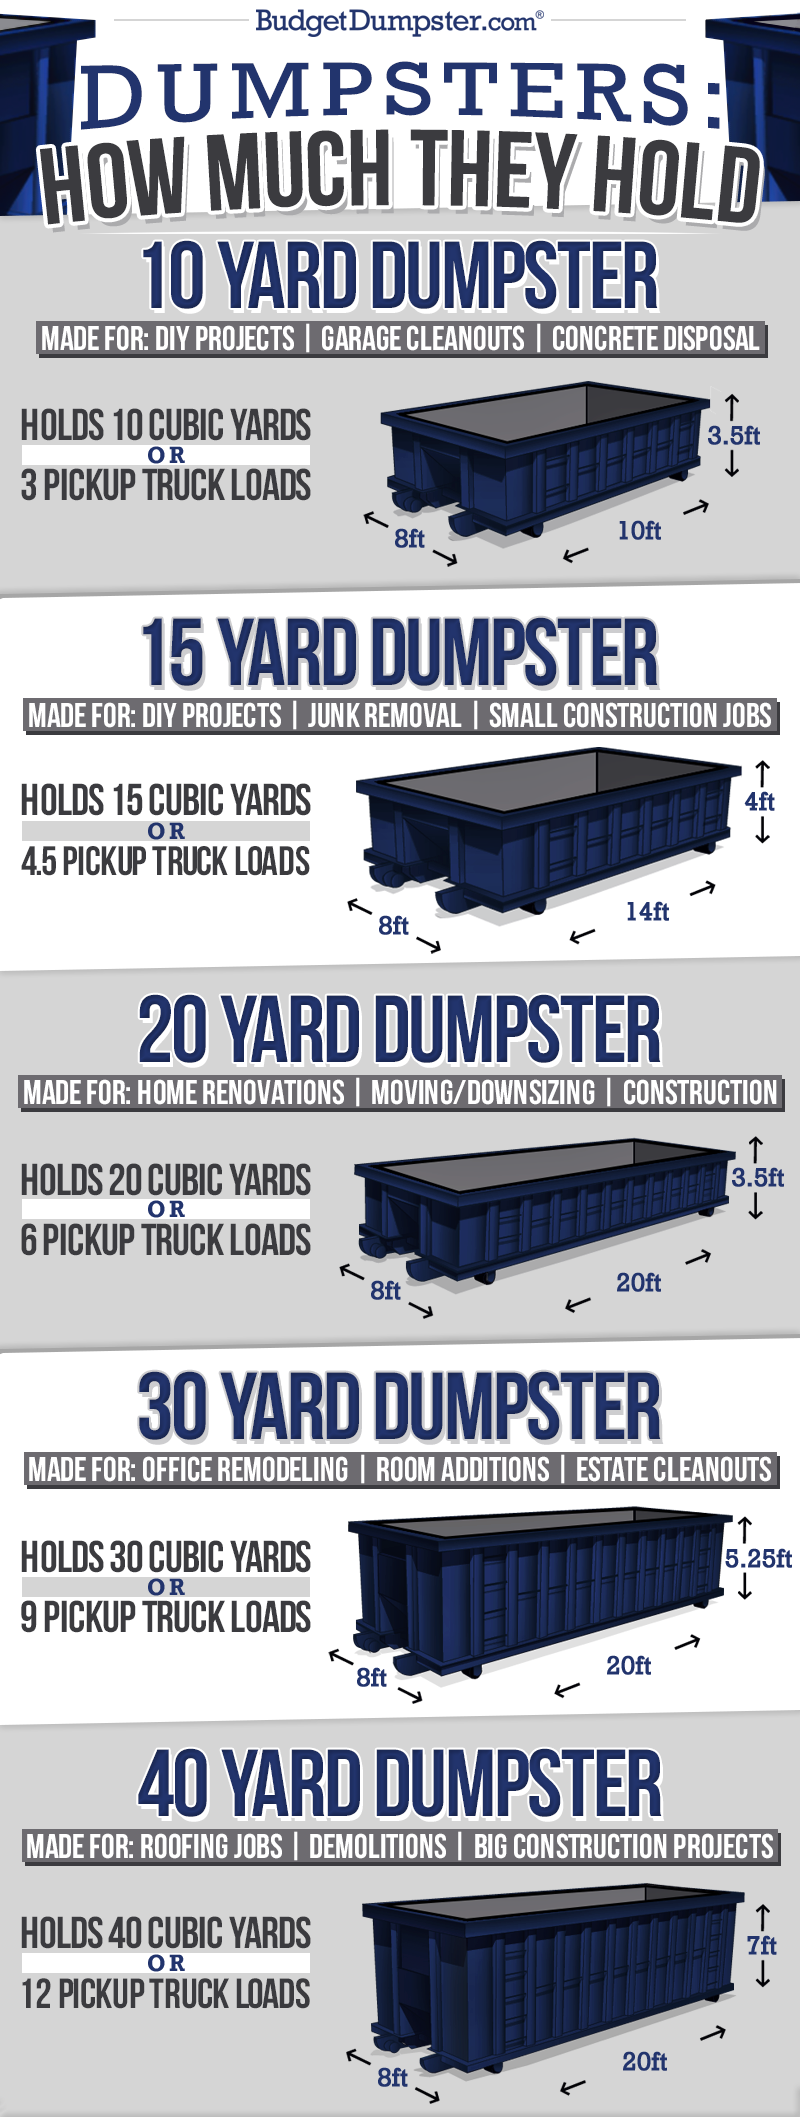 Dumpster Sizes and How Much They Hold